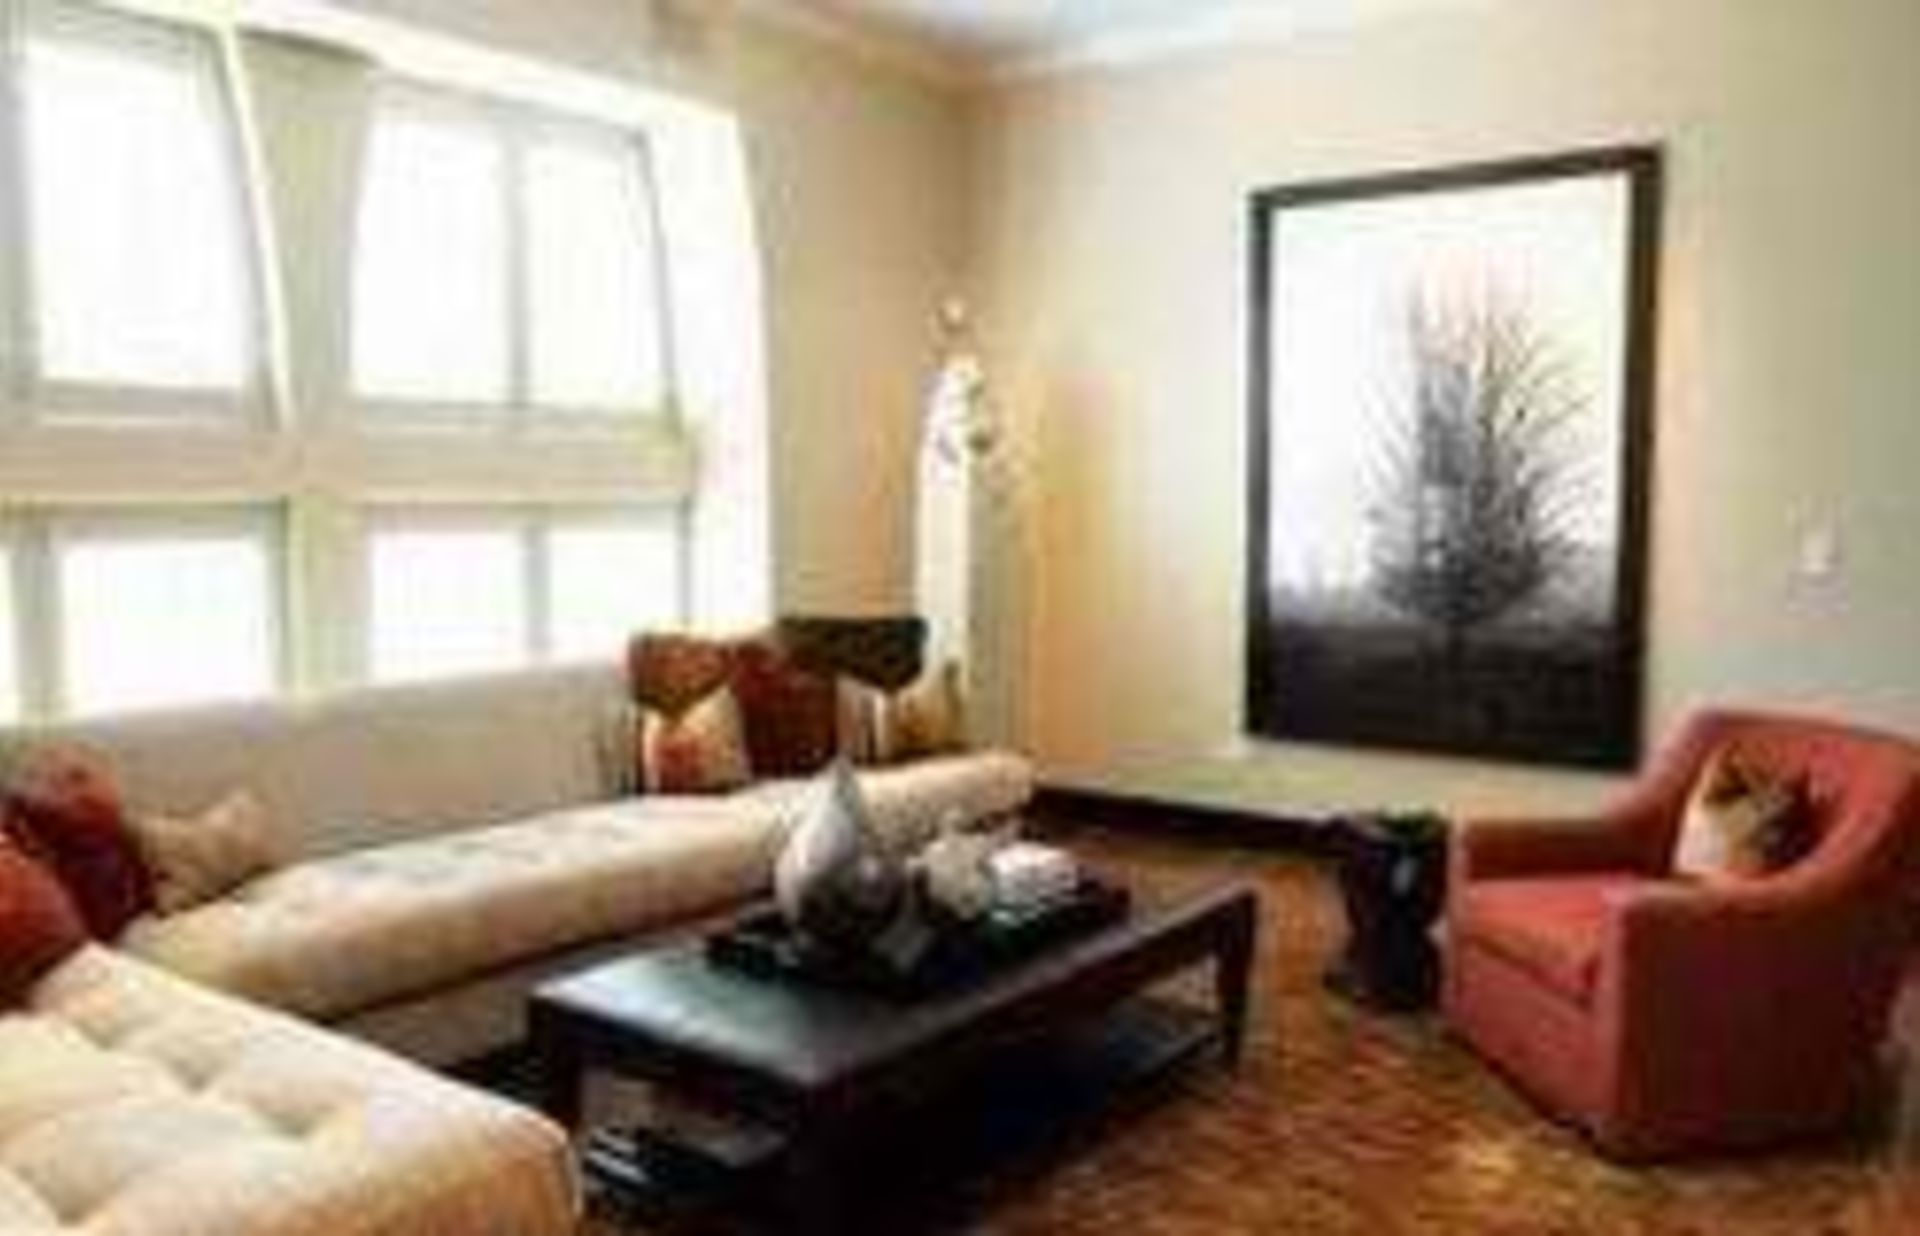 Paint Color Combinations to Use before Selling Your Home